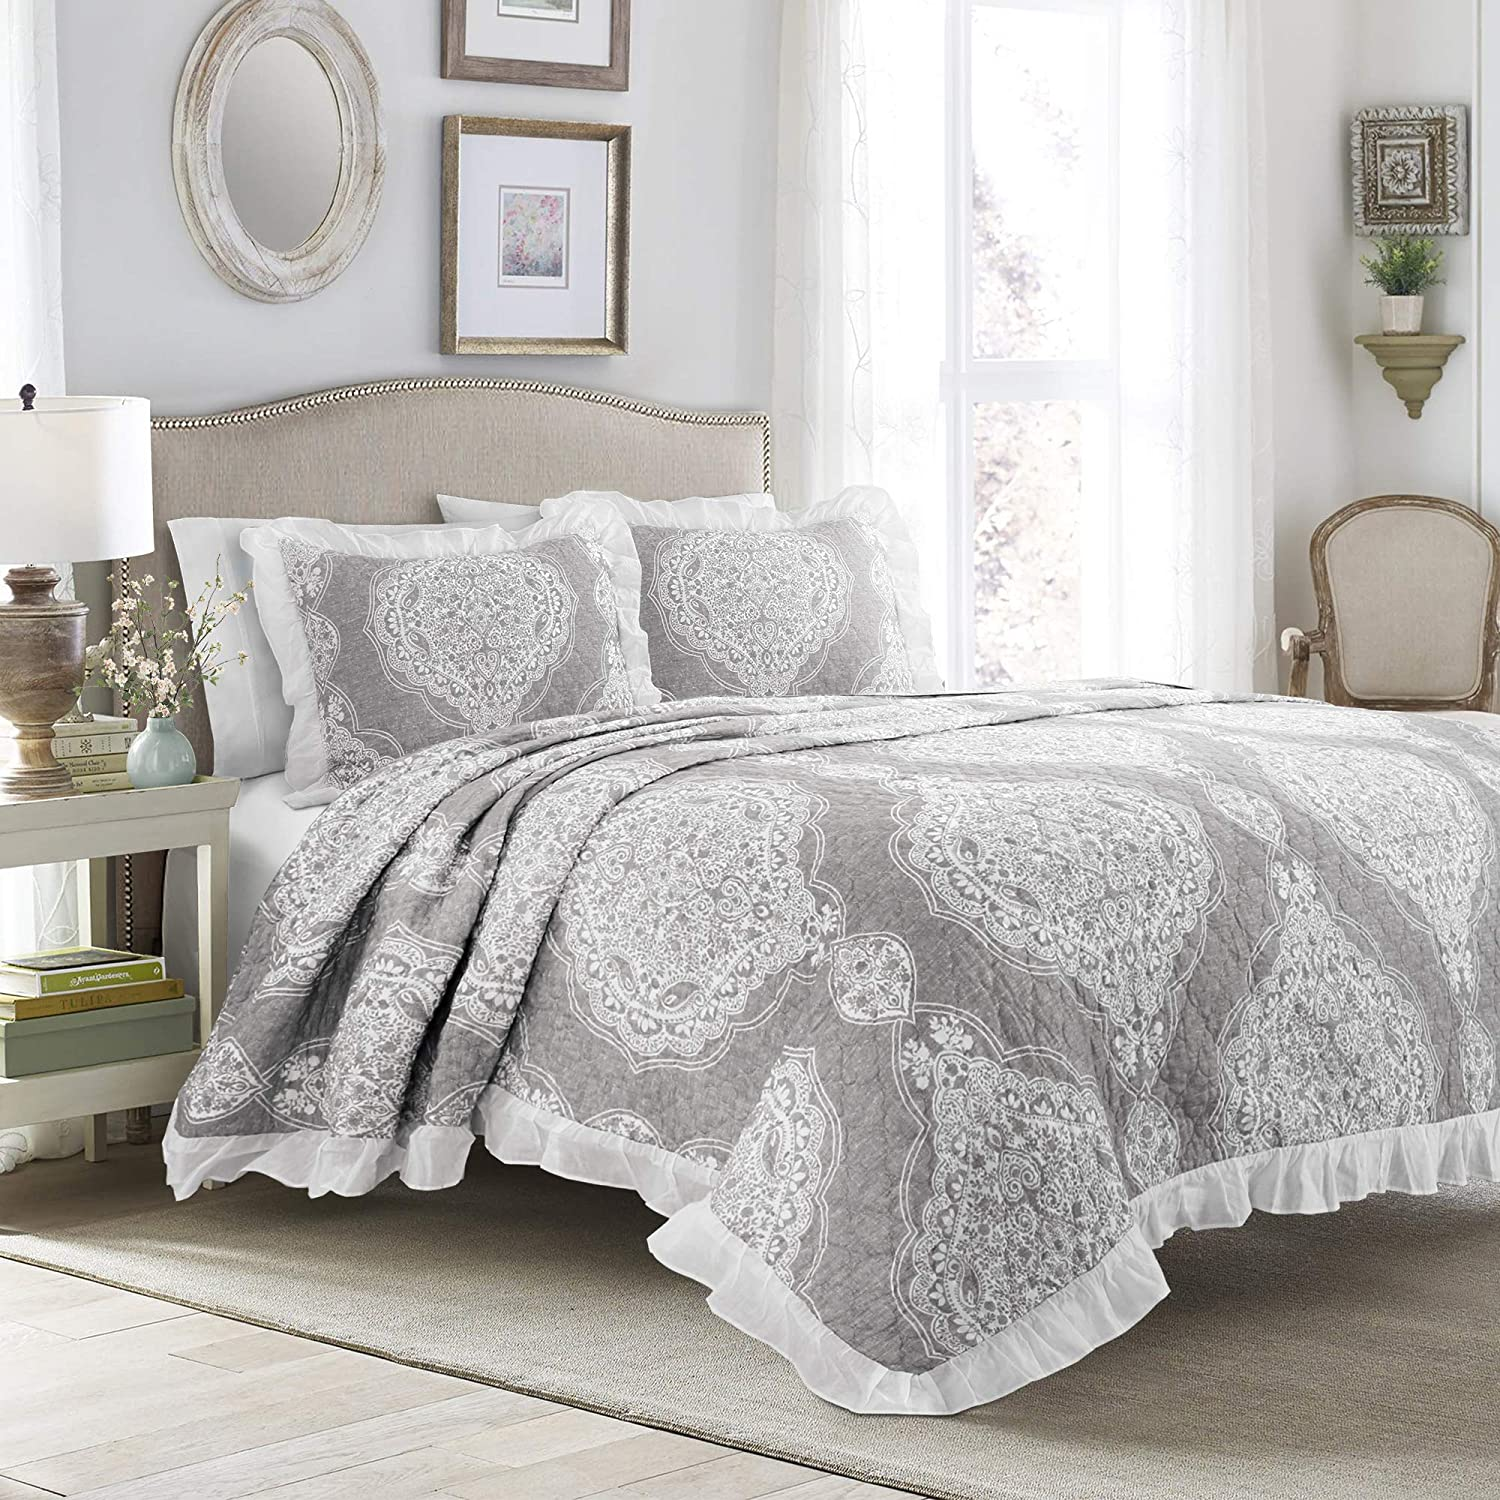 Lush Decor Lucianna Ruffle Edge Cotton 3 Piece Bedspread Set, King, Gray